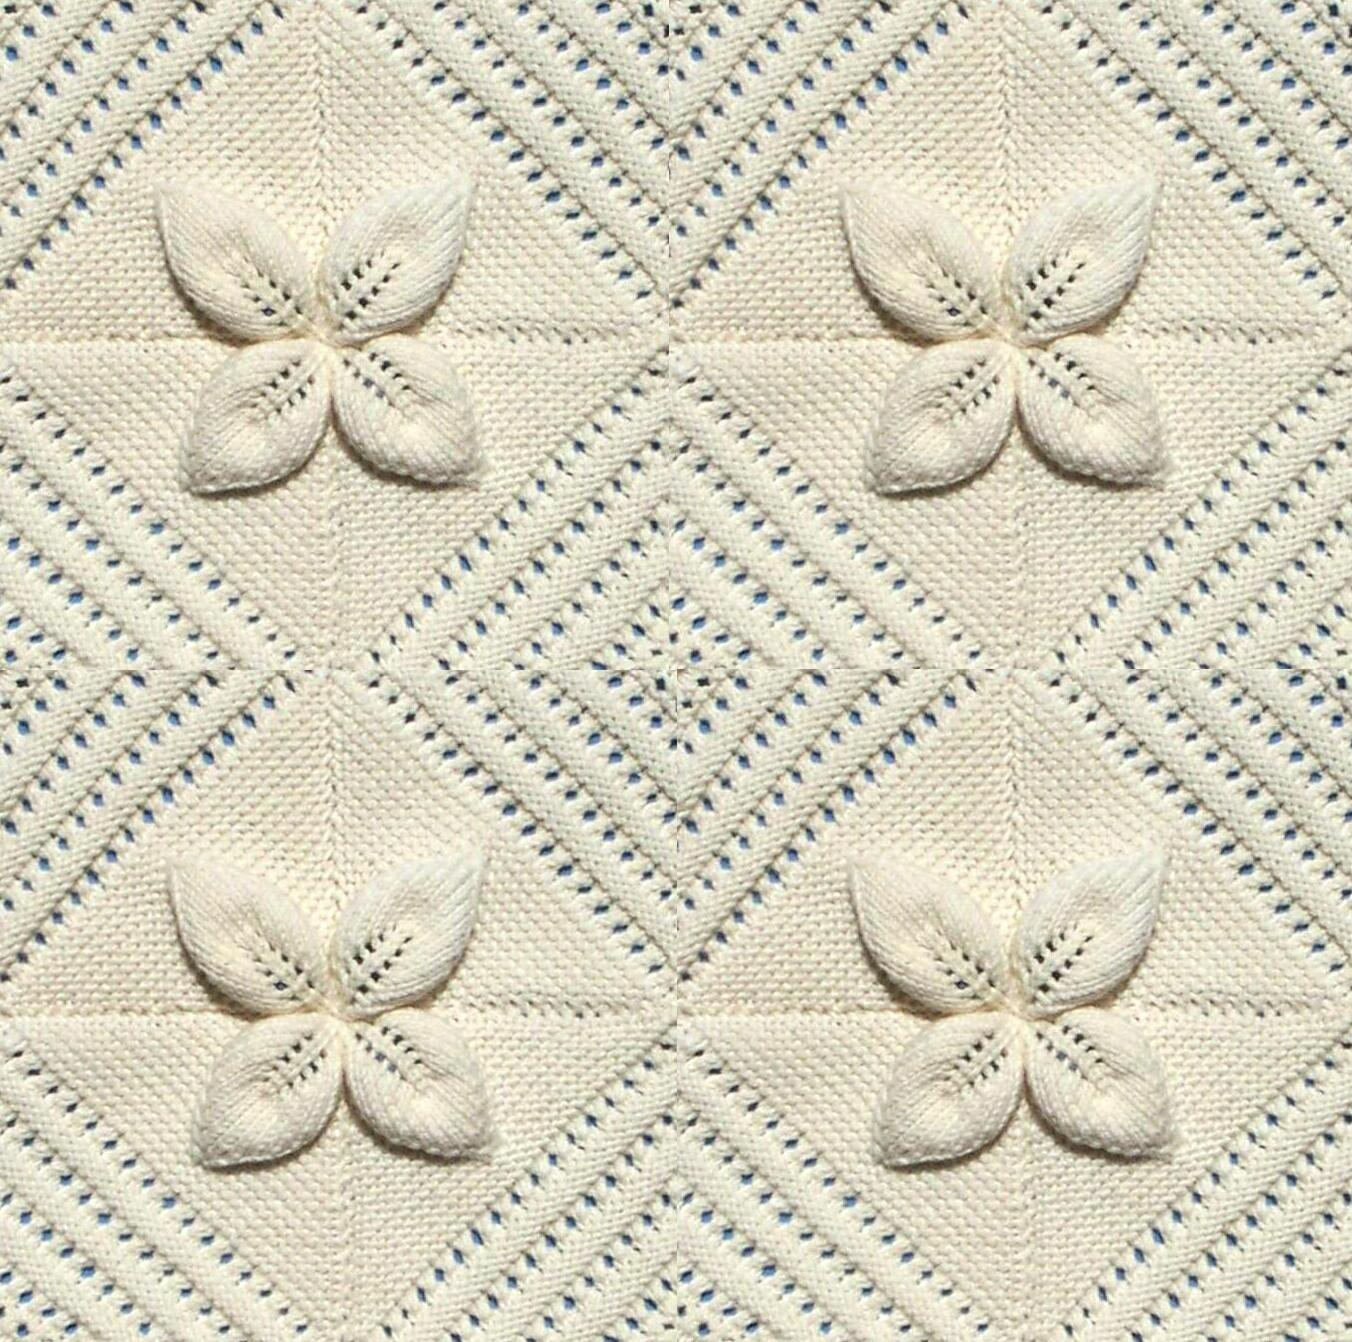 087774a09 Knitted Leaf Pattern Blanket ~ Ipaa.info for .